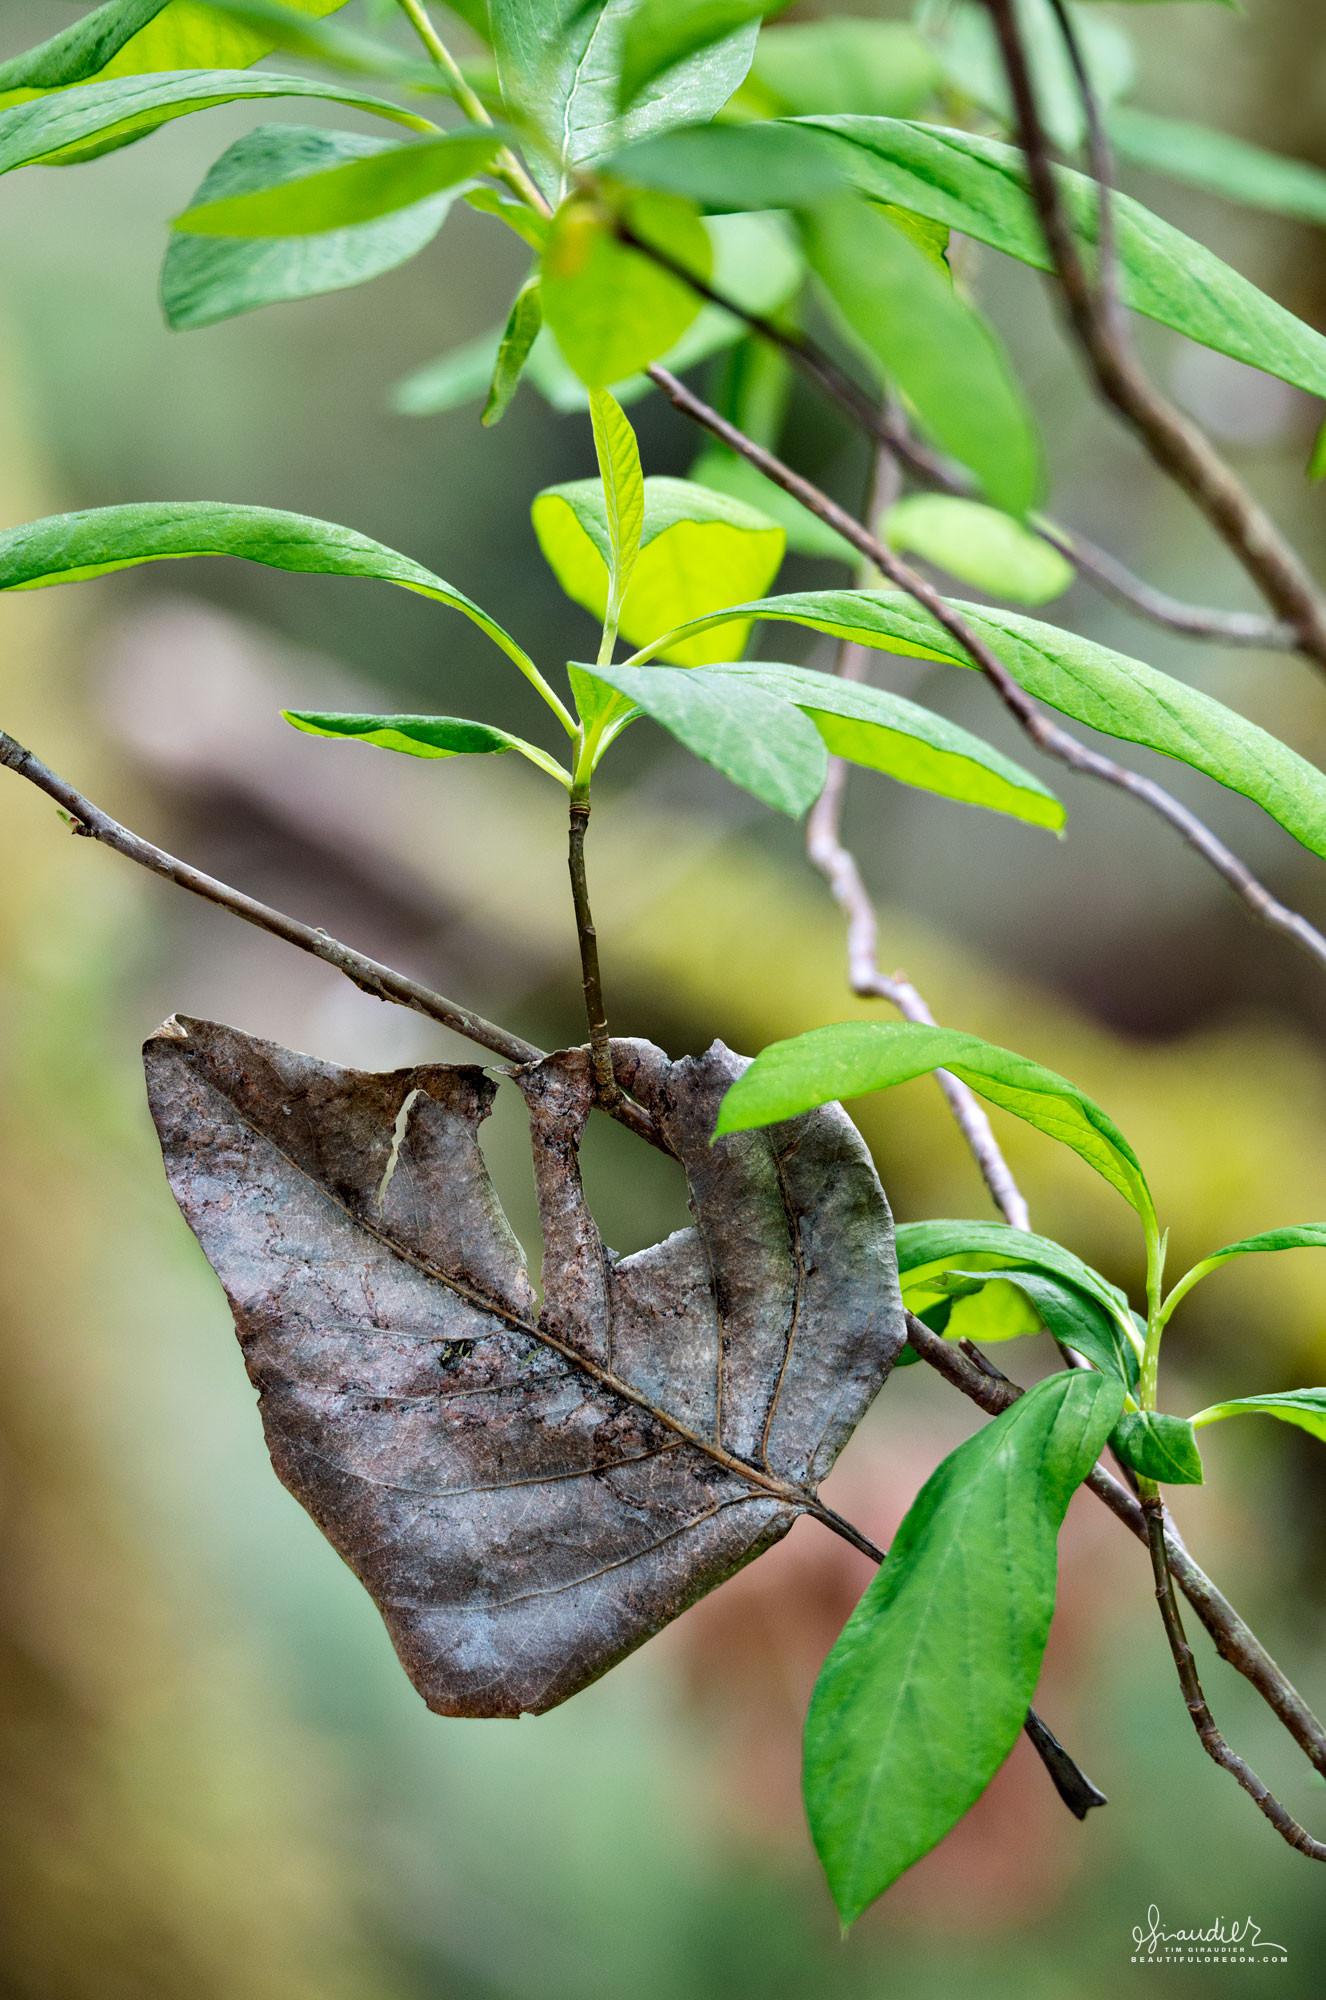 A Black Cottonwood leaf from last fall dangles from the spring growth of an Oso Berry (Oemleria cerasiformis). Salmon Creek, Willamette National Forest